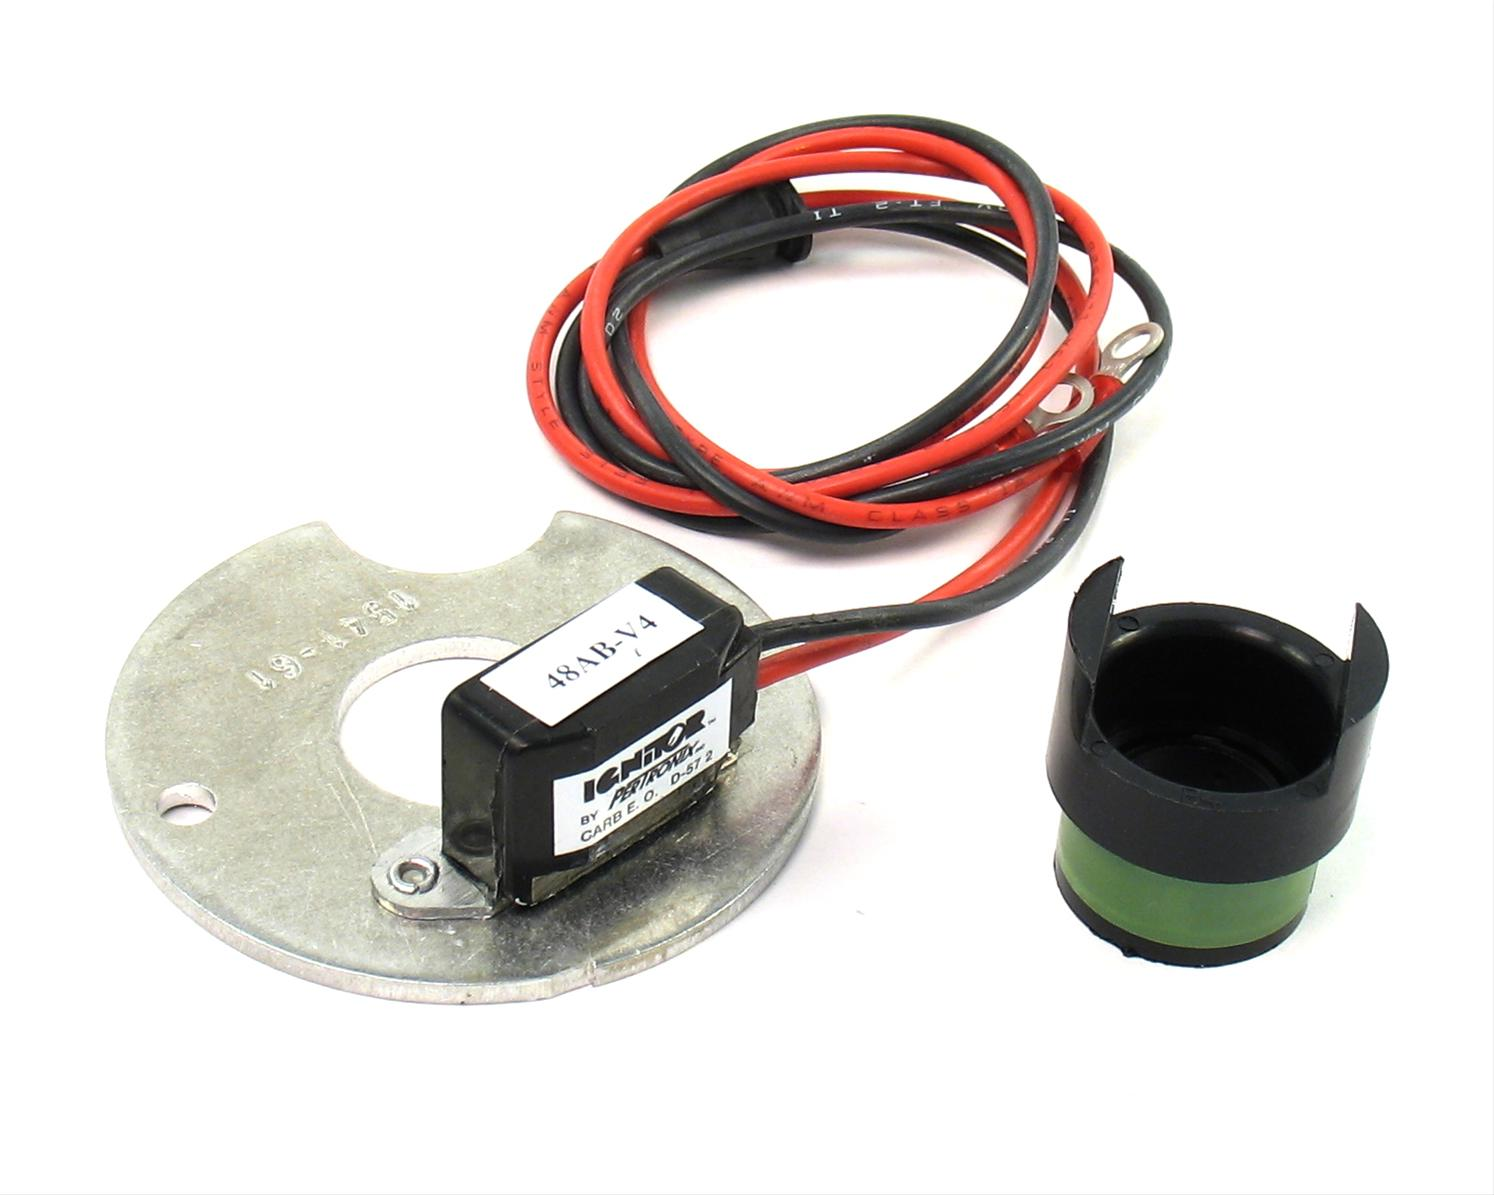 Pertronix Ignitor Solid State Ignition Systems 1541 Free Shipping Kaiser Jeep Wiring On Orders Over 99 At Summit Racing